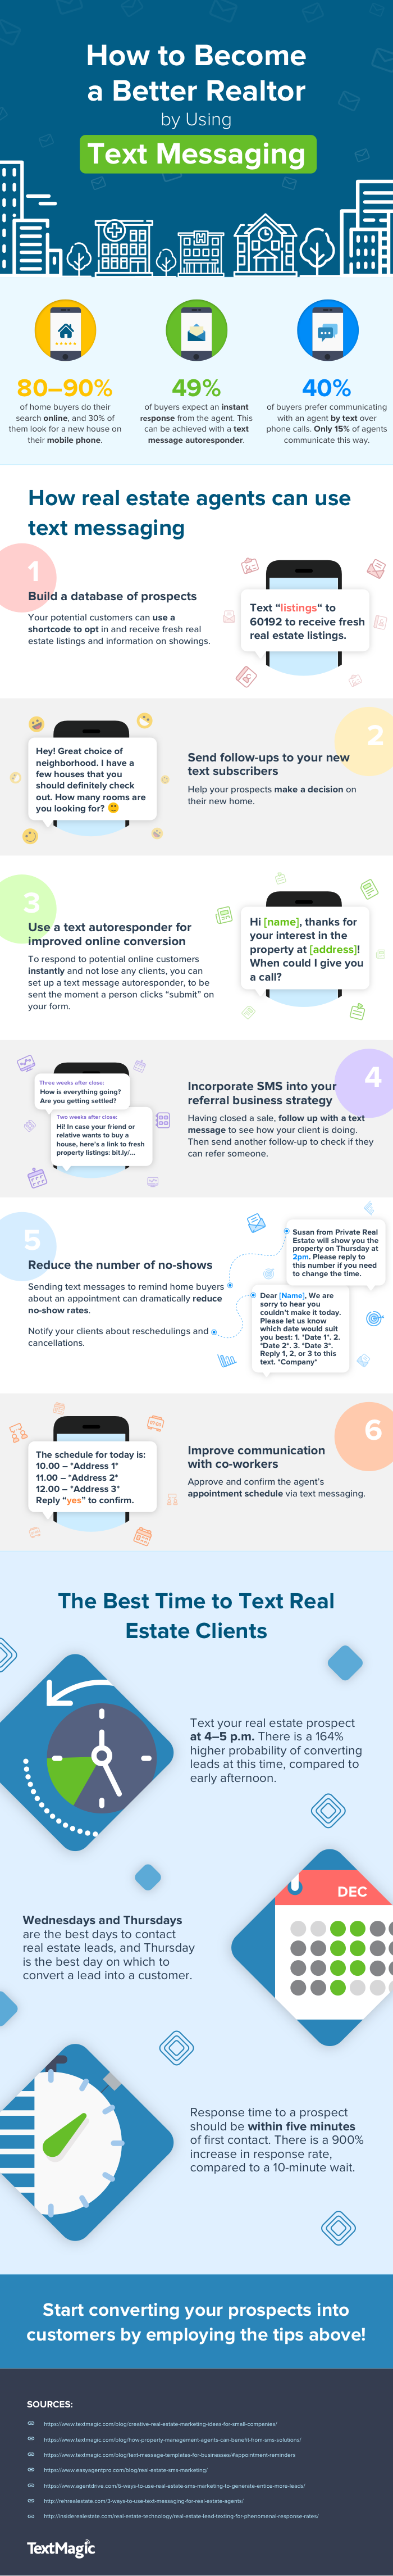 How to Become a Better Realtor by Using Text Messaging (Infographic)